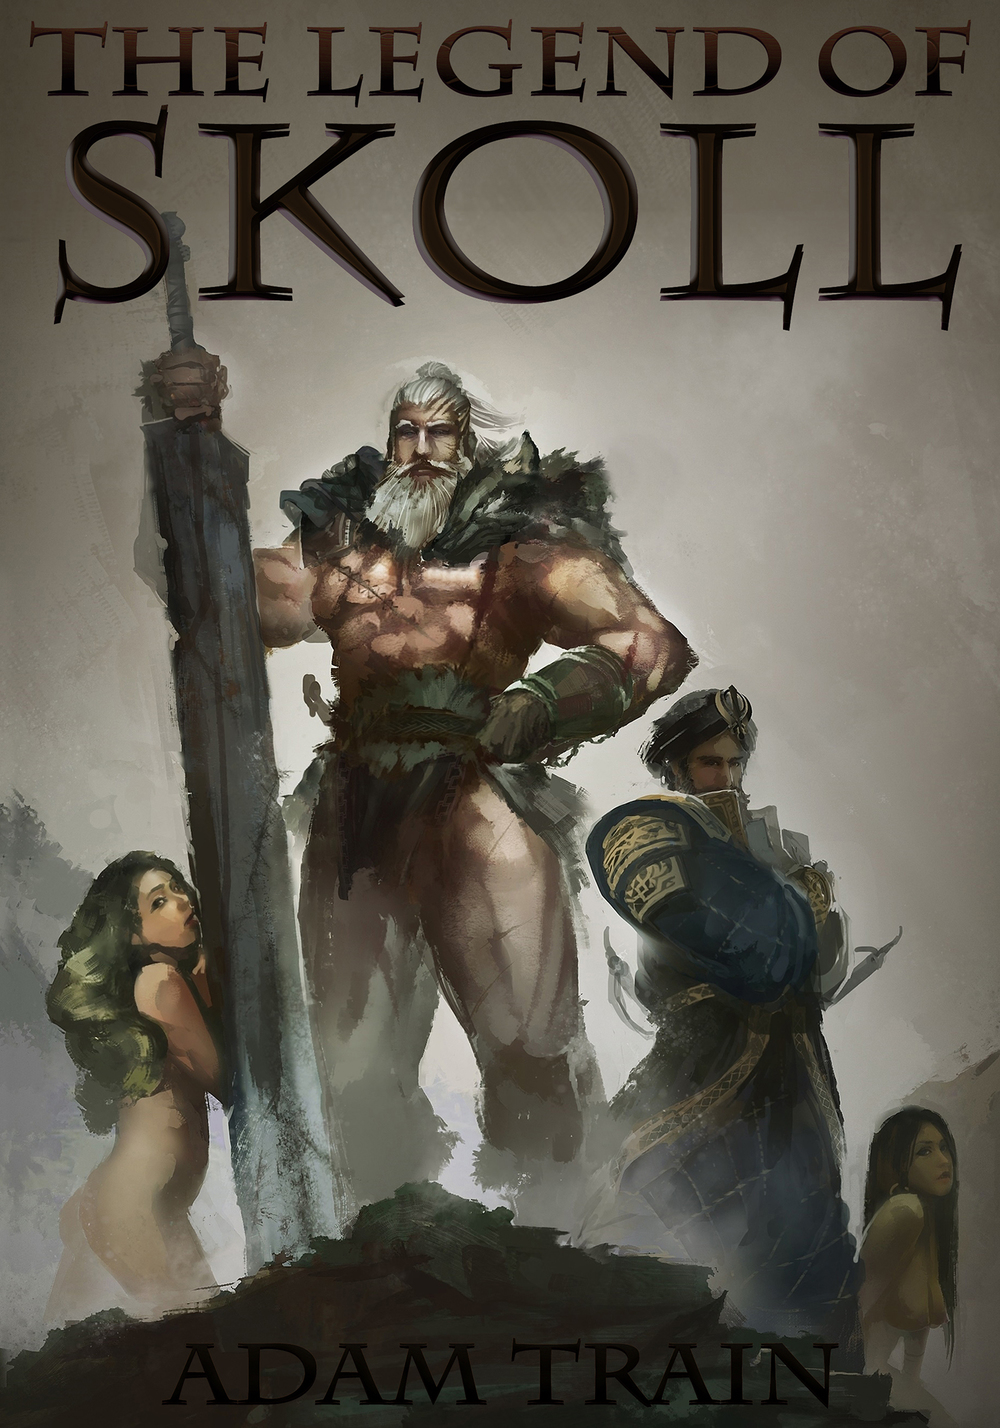 In an ancient epoch when steel and brawn ruled the lands, Sköll, the Northern Wolf, forged a legend that would last the ages. In this origin tale, Sköll's savage beginnings are explained, along with the key events that shaped the brute's life.